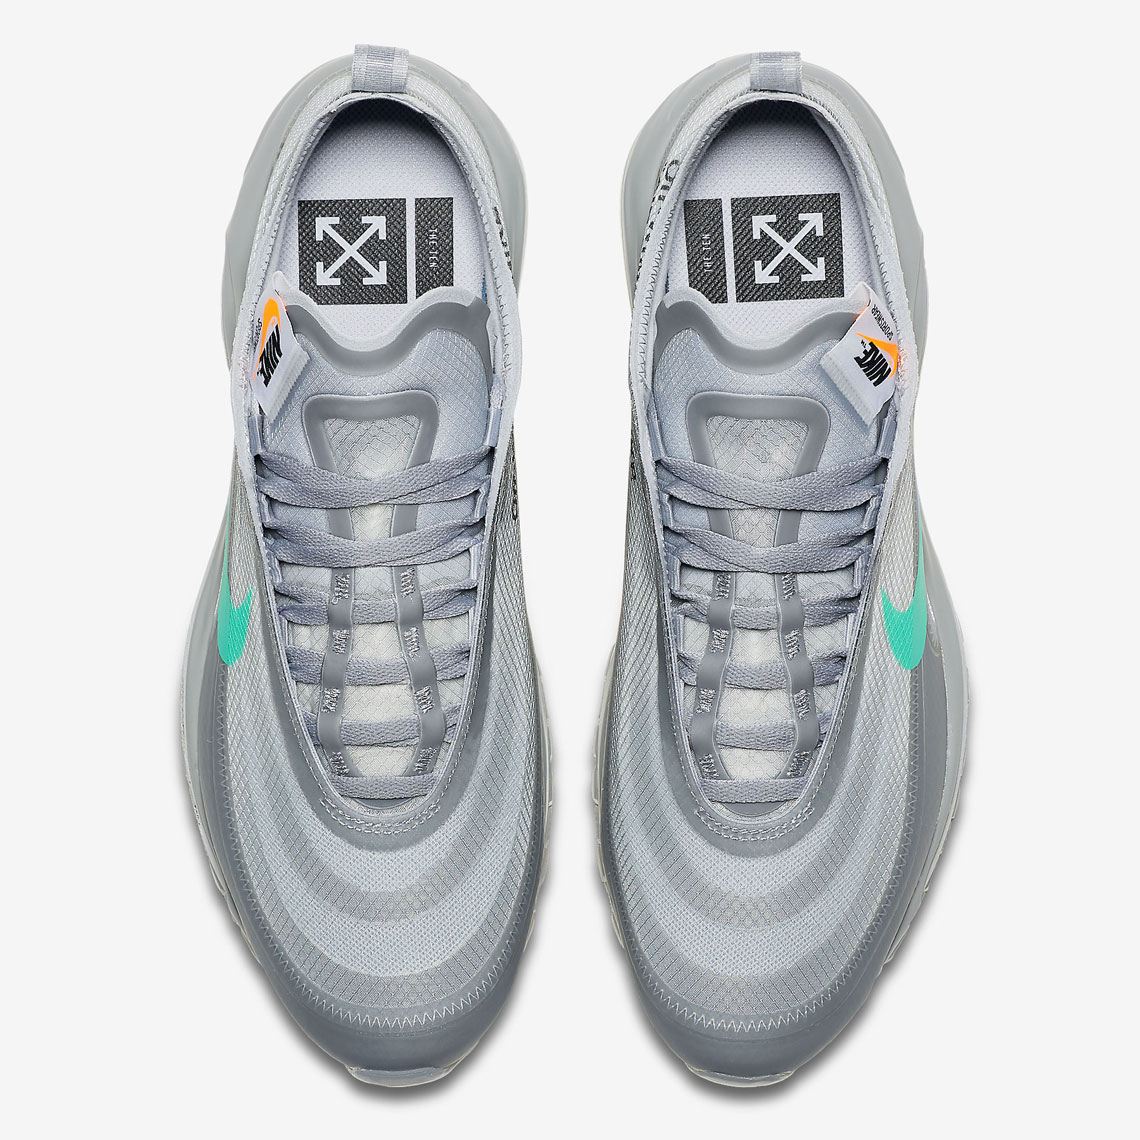 super popular 8f5d3 a9fc3 Off White Nike Air Max 97 Menta AJ4585-101   SneakerNews.com